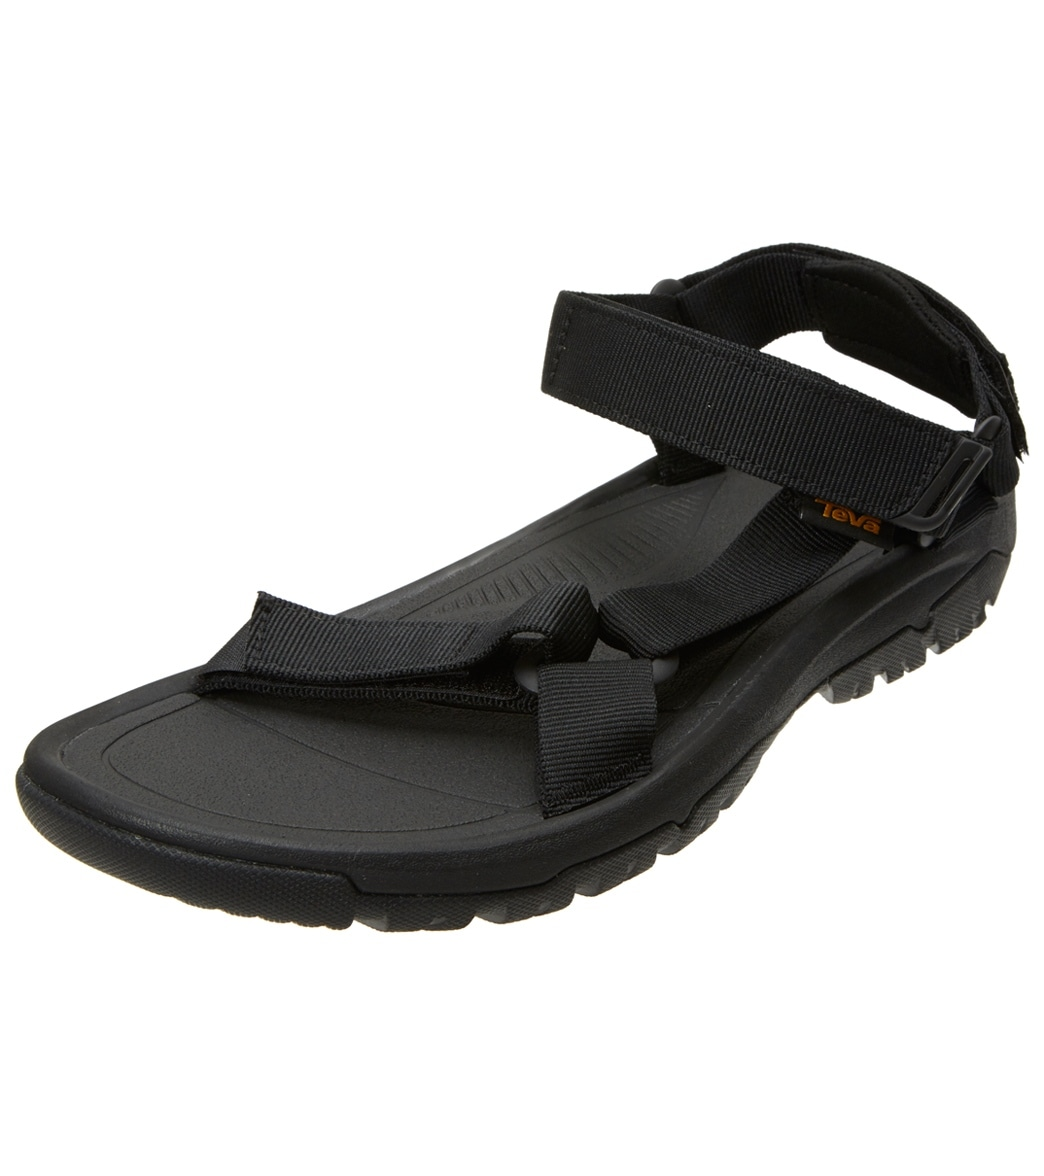 165899aa2ba91 Teva Men s Hurricane XLT2 Sandal at SwimOutlet.com - Free Shipping